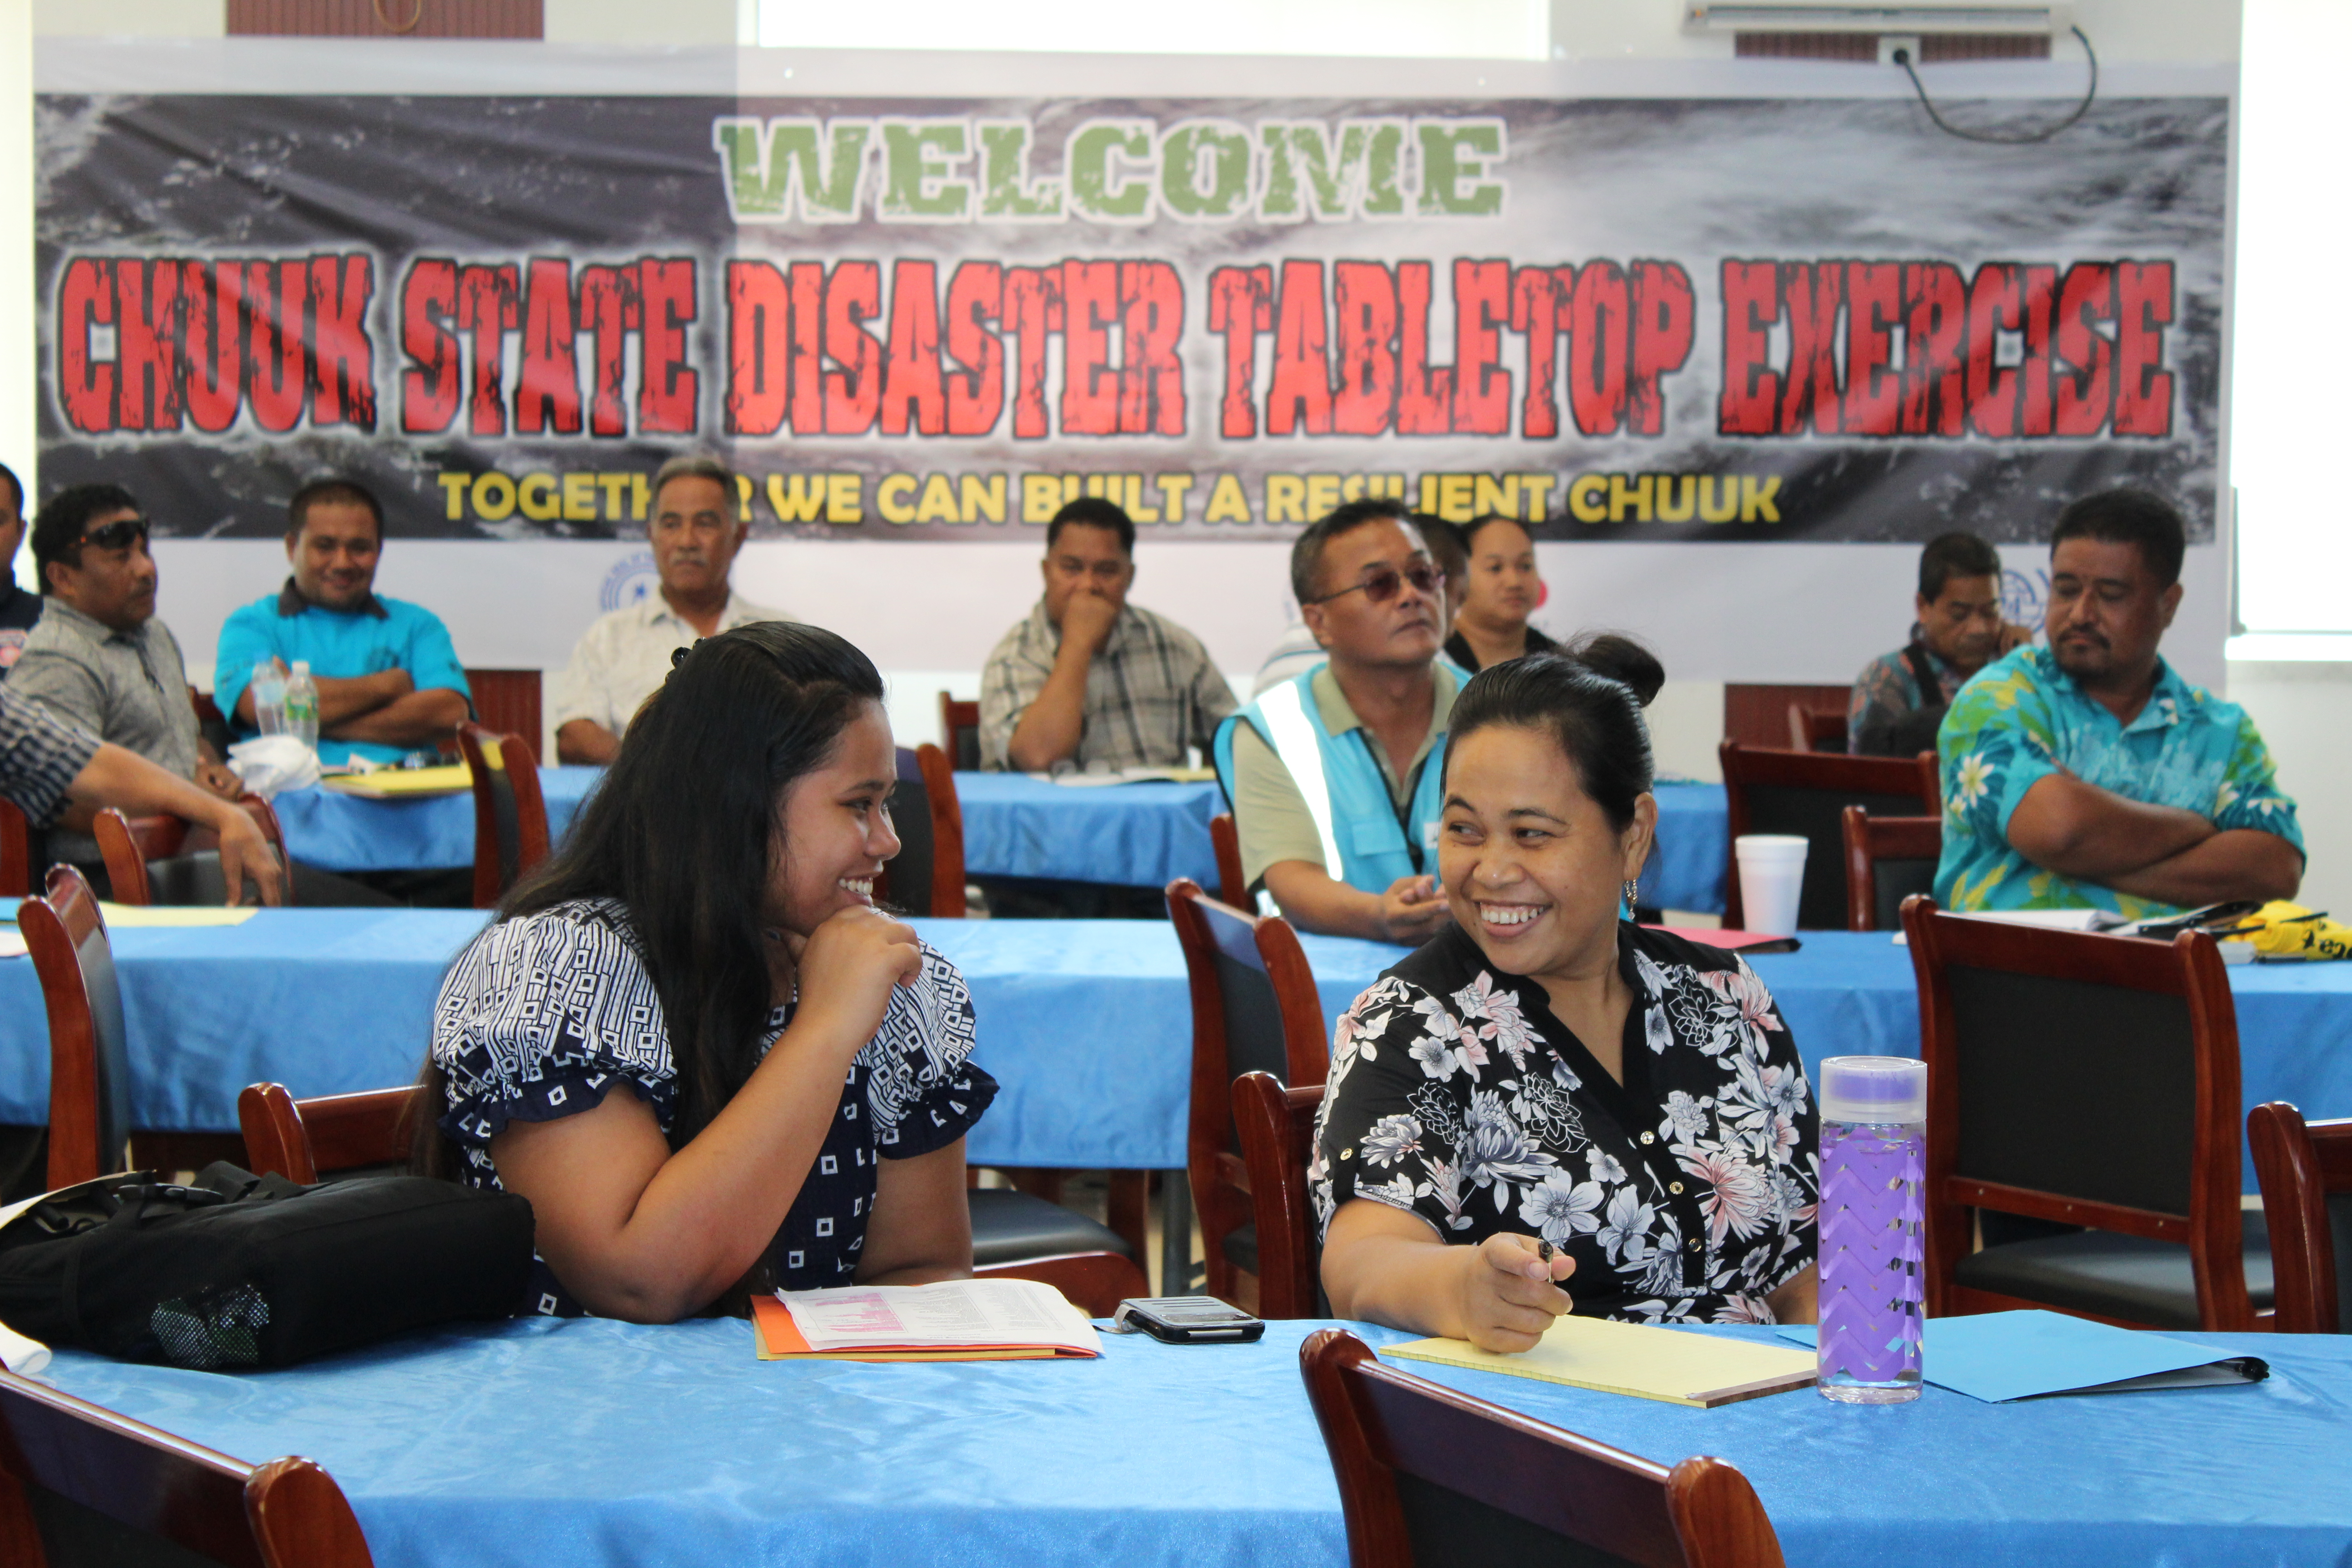 In the foreground, two women sit talking and laughing. A sign behind says 'Chuuk State Disaster Tabletop Exercise.'